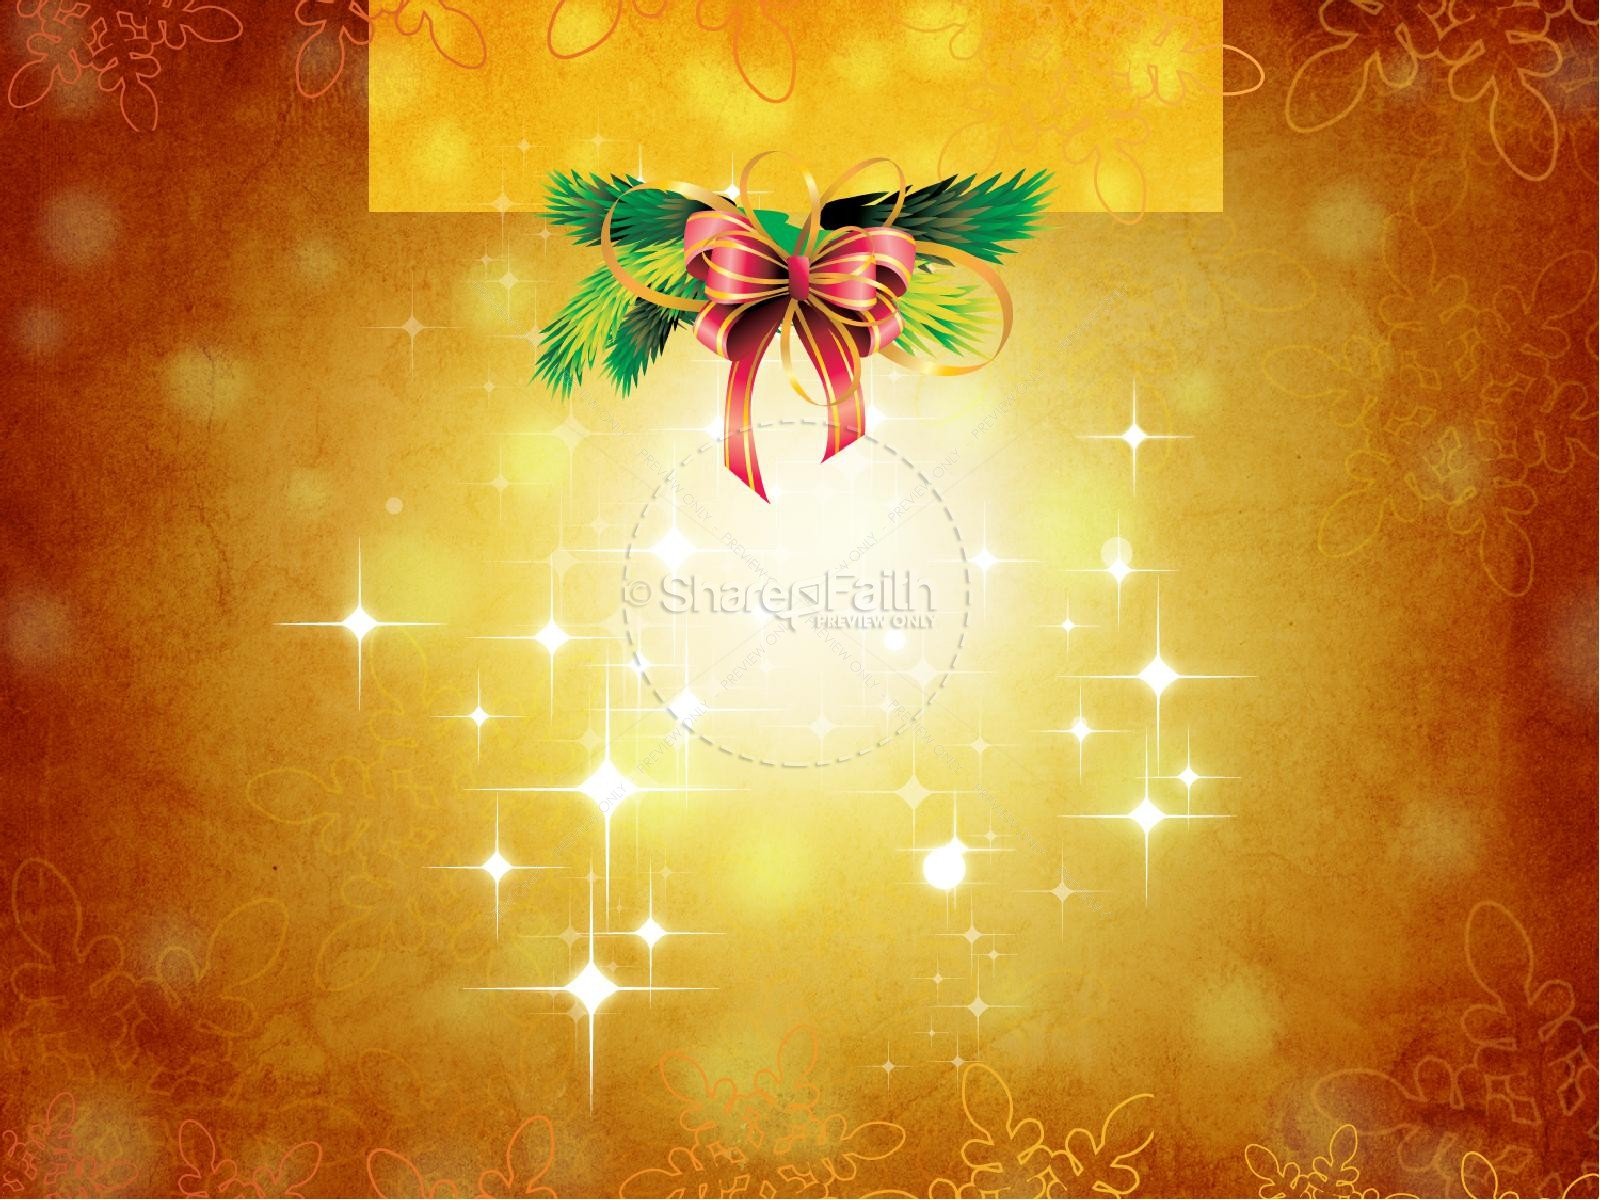 christ in christmas powerpoint template | christmas powerpoints, Modern powerpoint